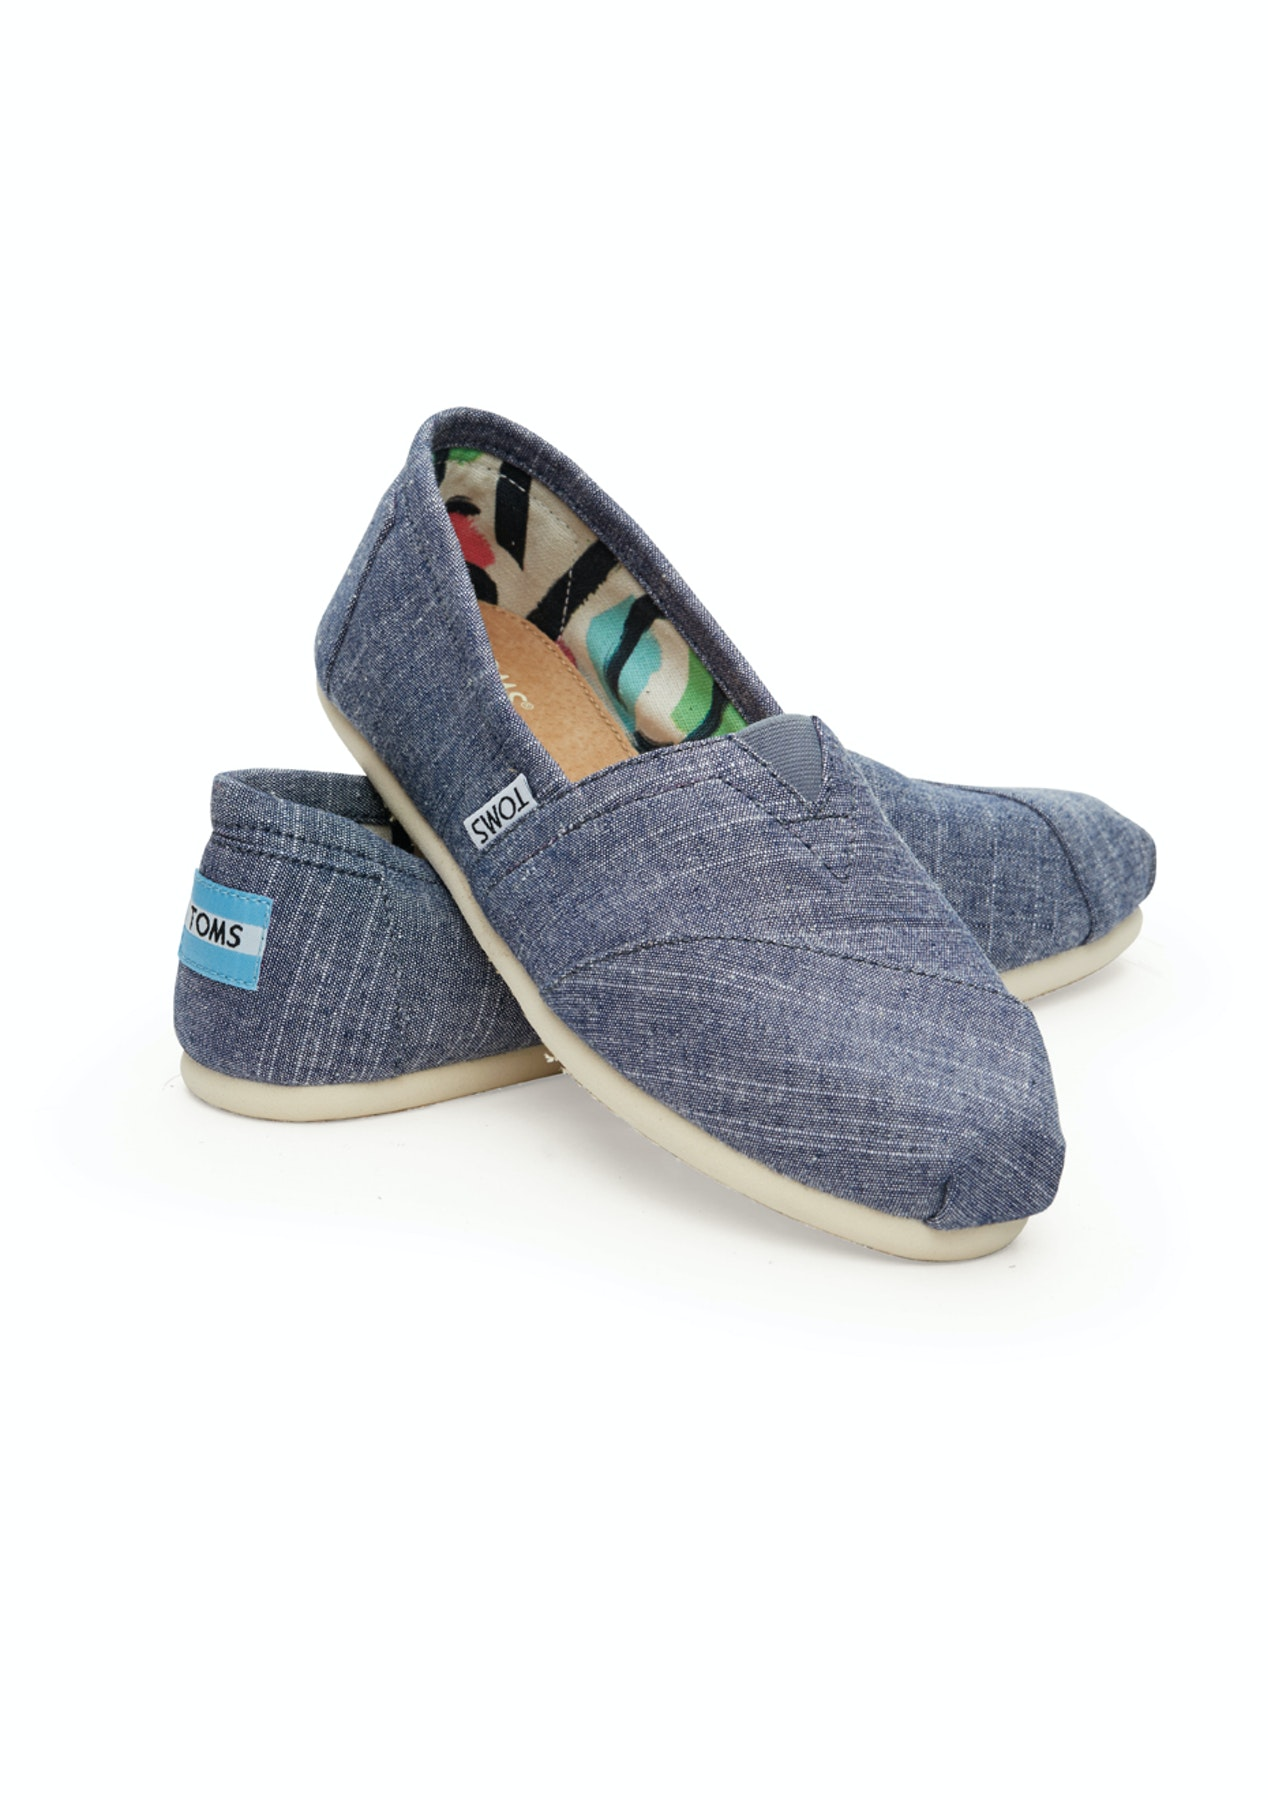 24cdbe231 Toms - Alpargata - Blue Chambray - Shoes Outlet - Onceit